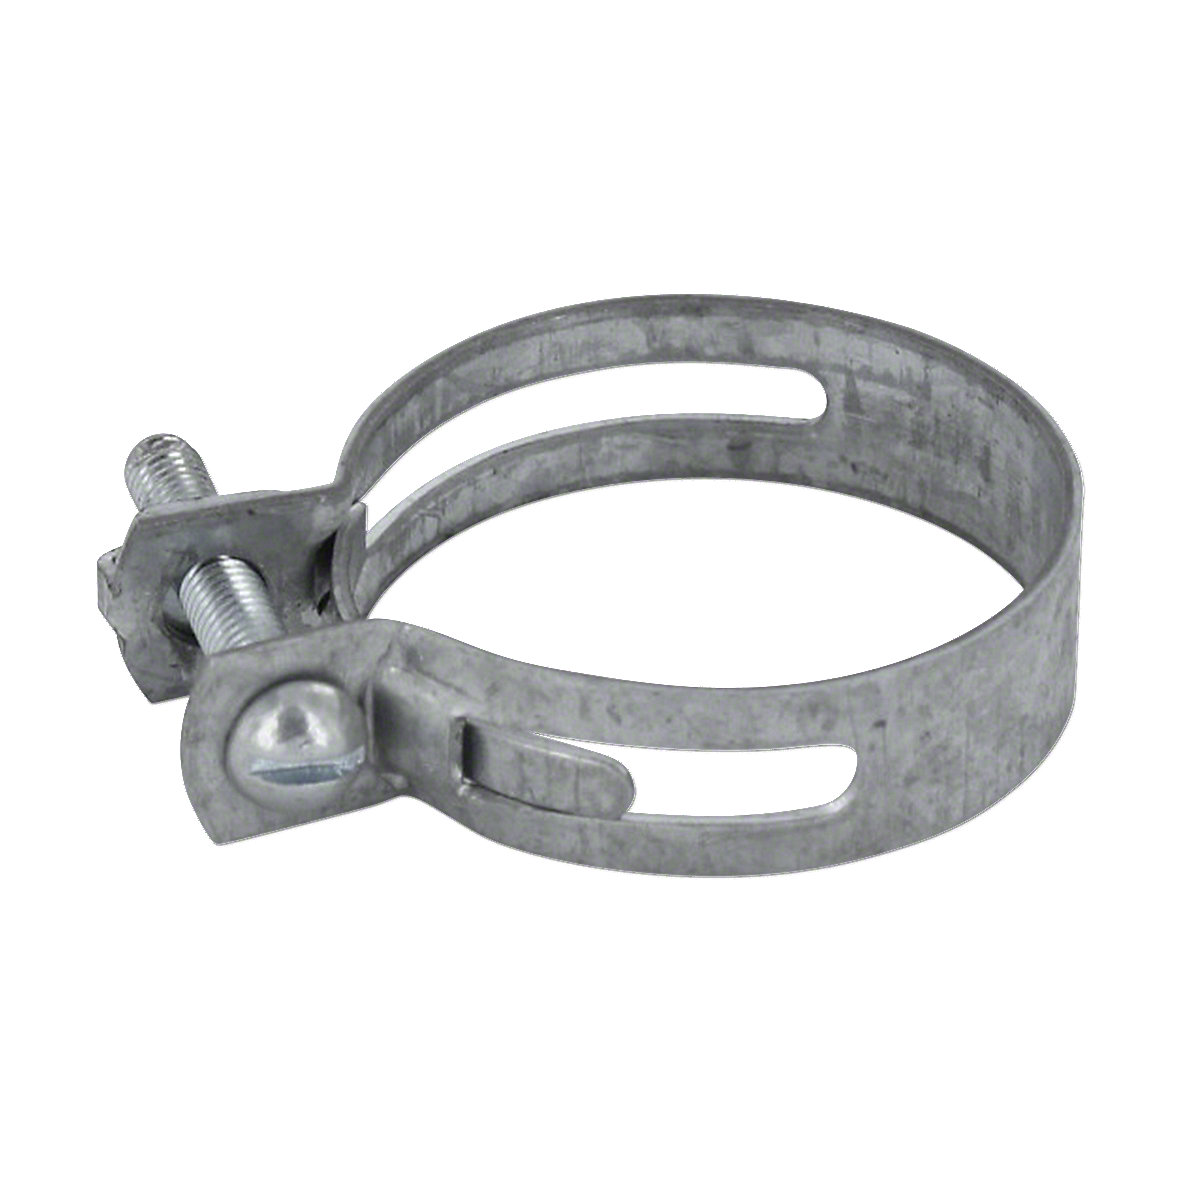 Upper or Lower Radiator Hose Clamp For Allis Chalmers: B, C, CA, D10, D12, D14, IB, RC.